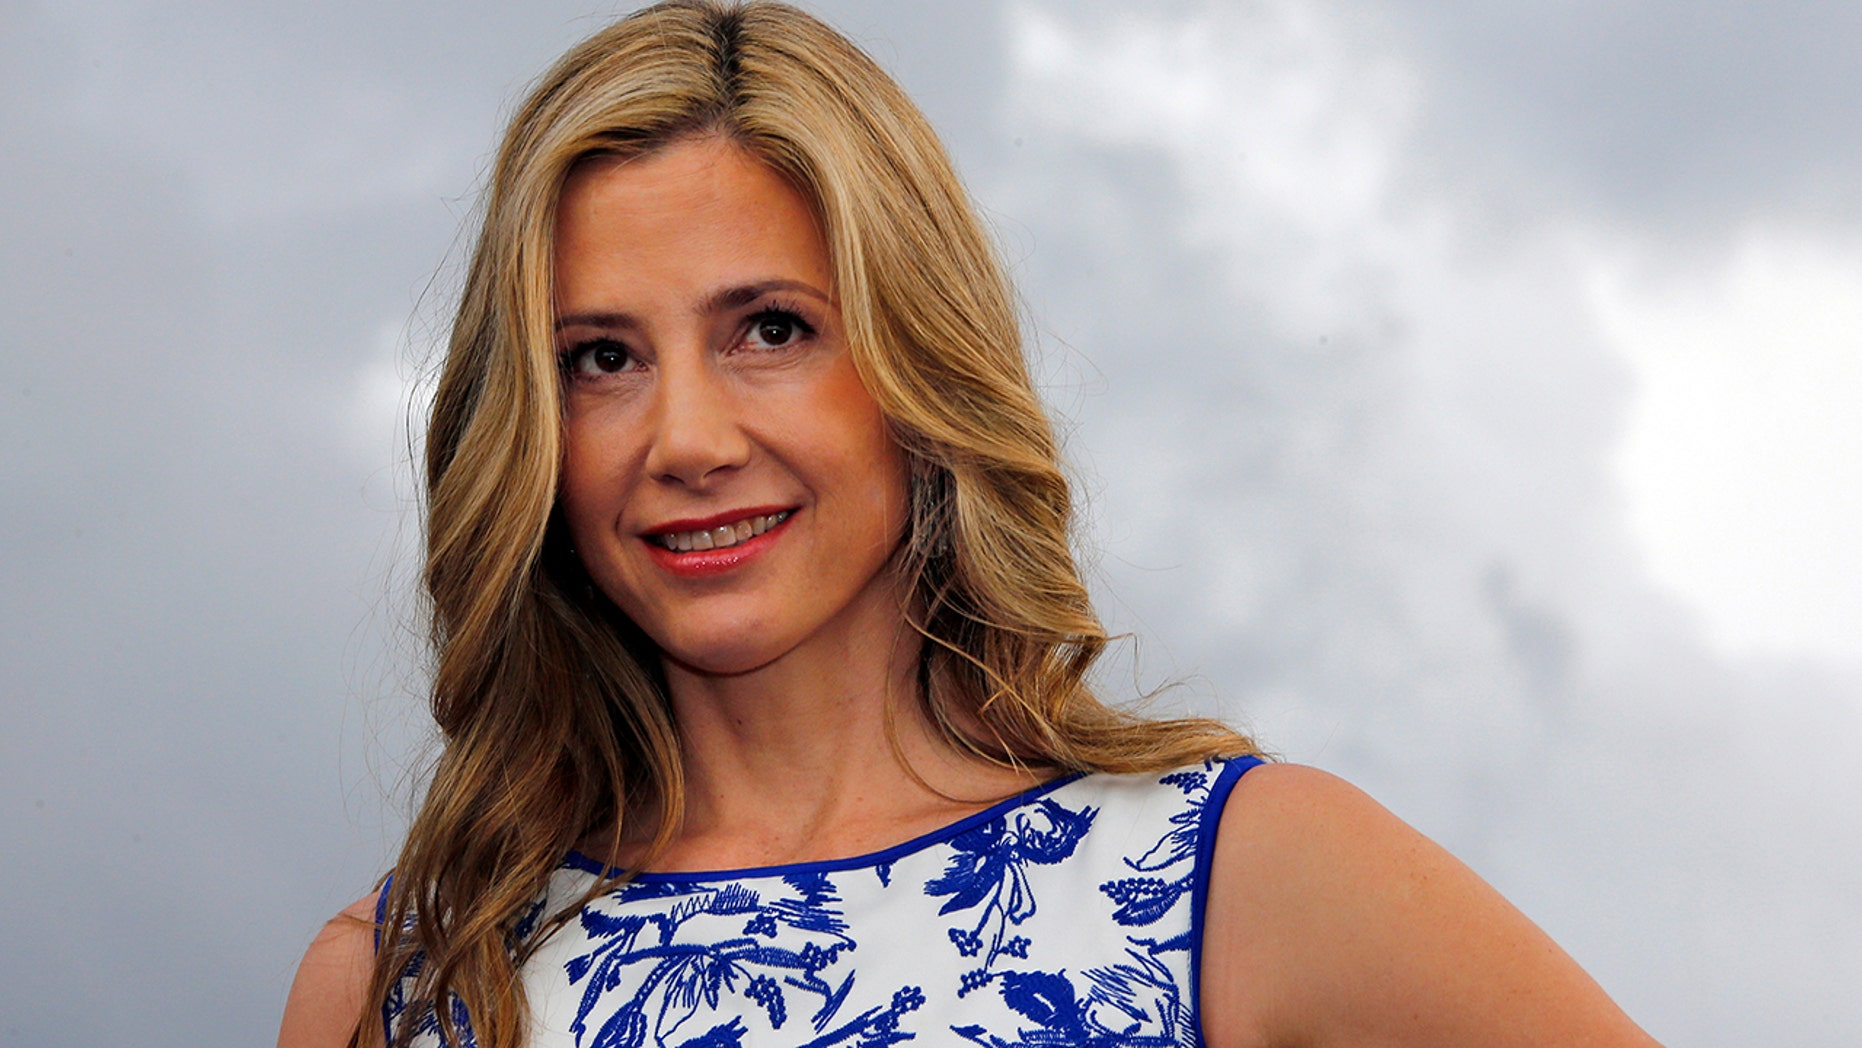 Mira Sorvino is opening about sexual harassment in Hollywood.